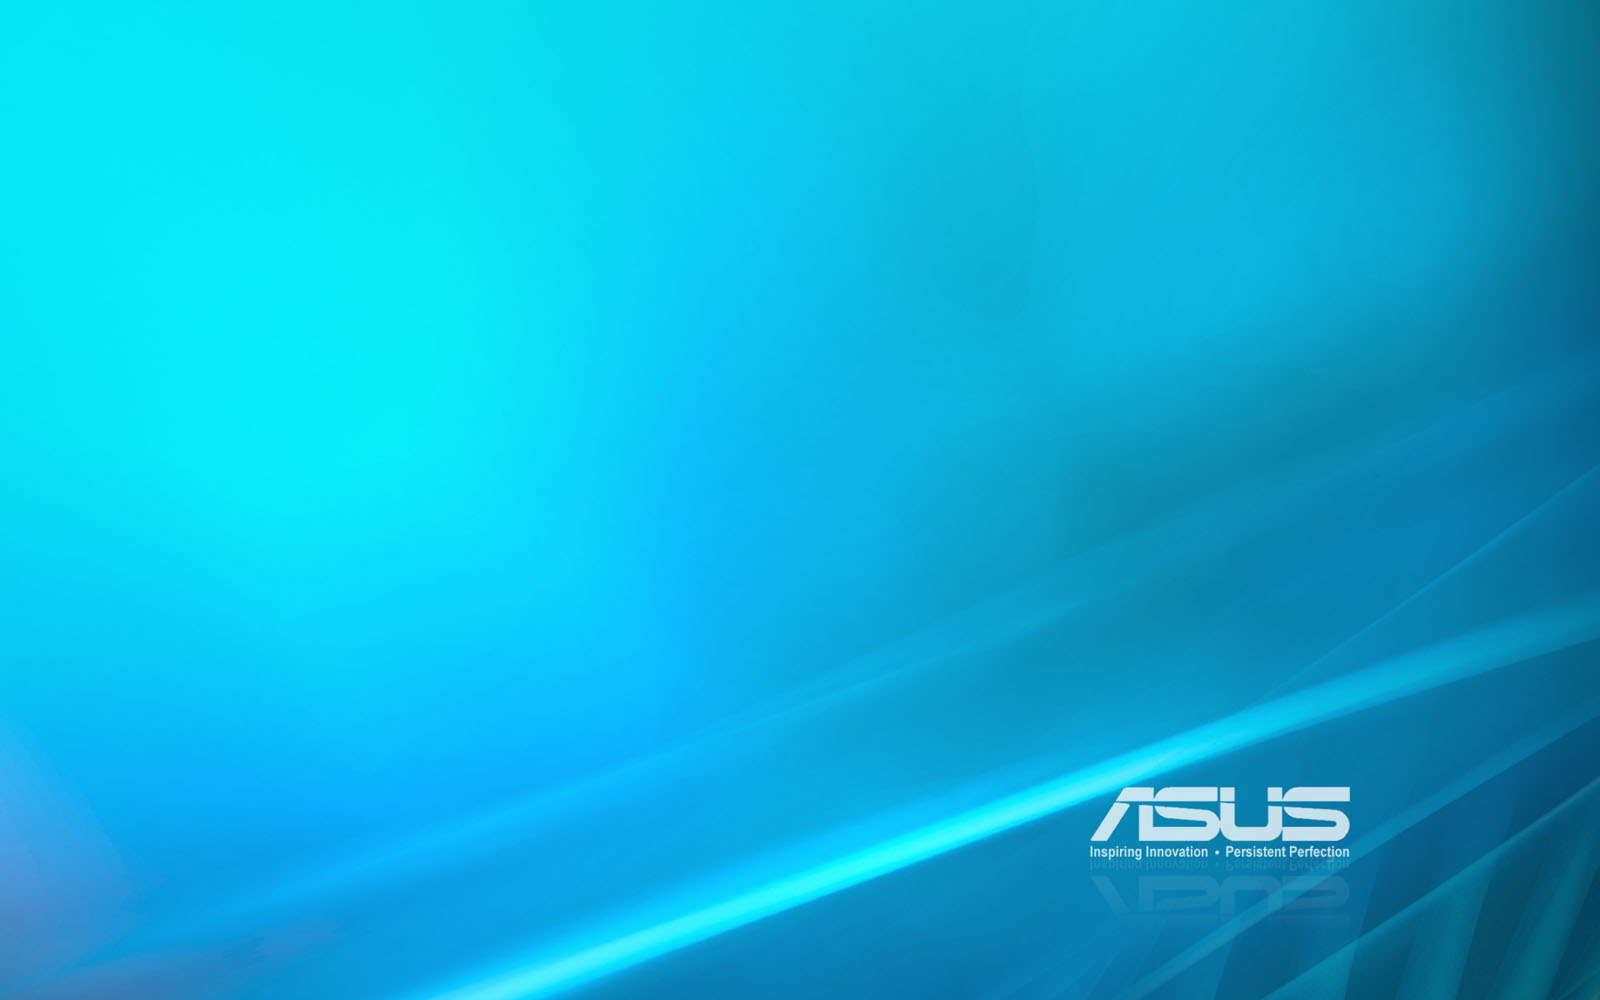 3d Wallpaper Of Cars And Bikes Wallpapers Asus Wallpapers